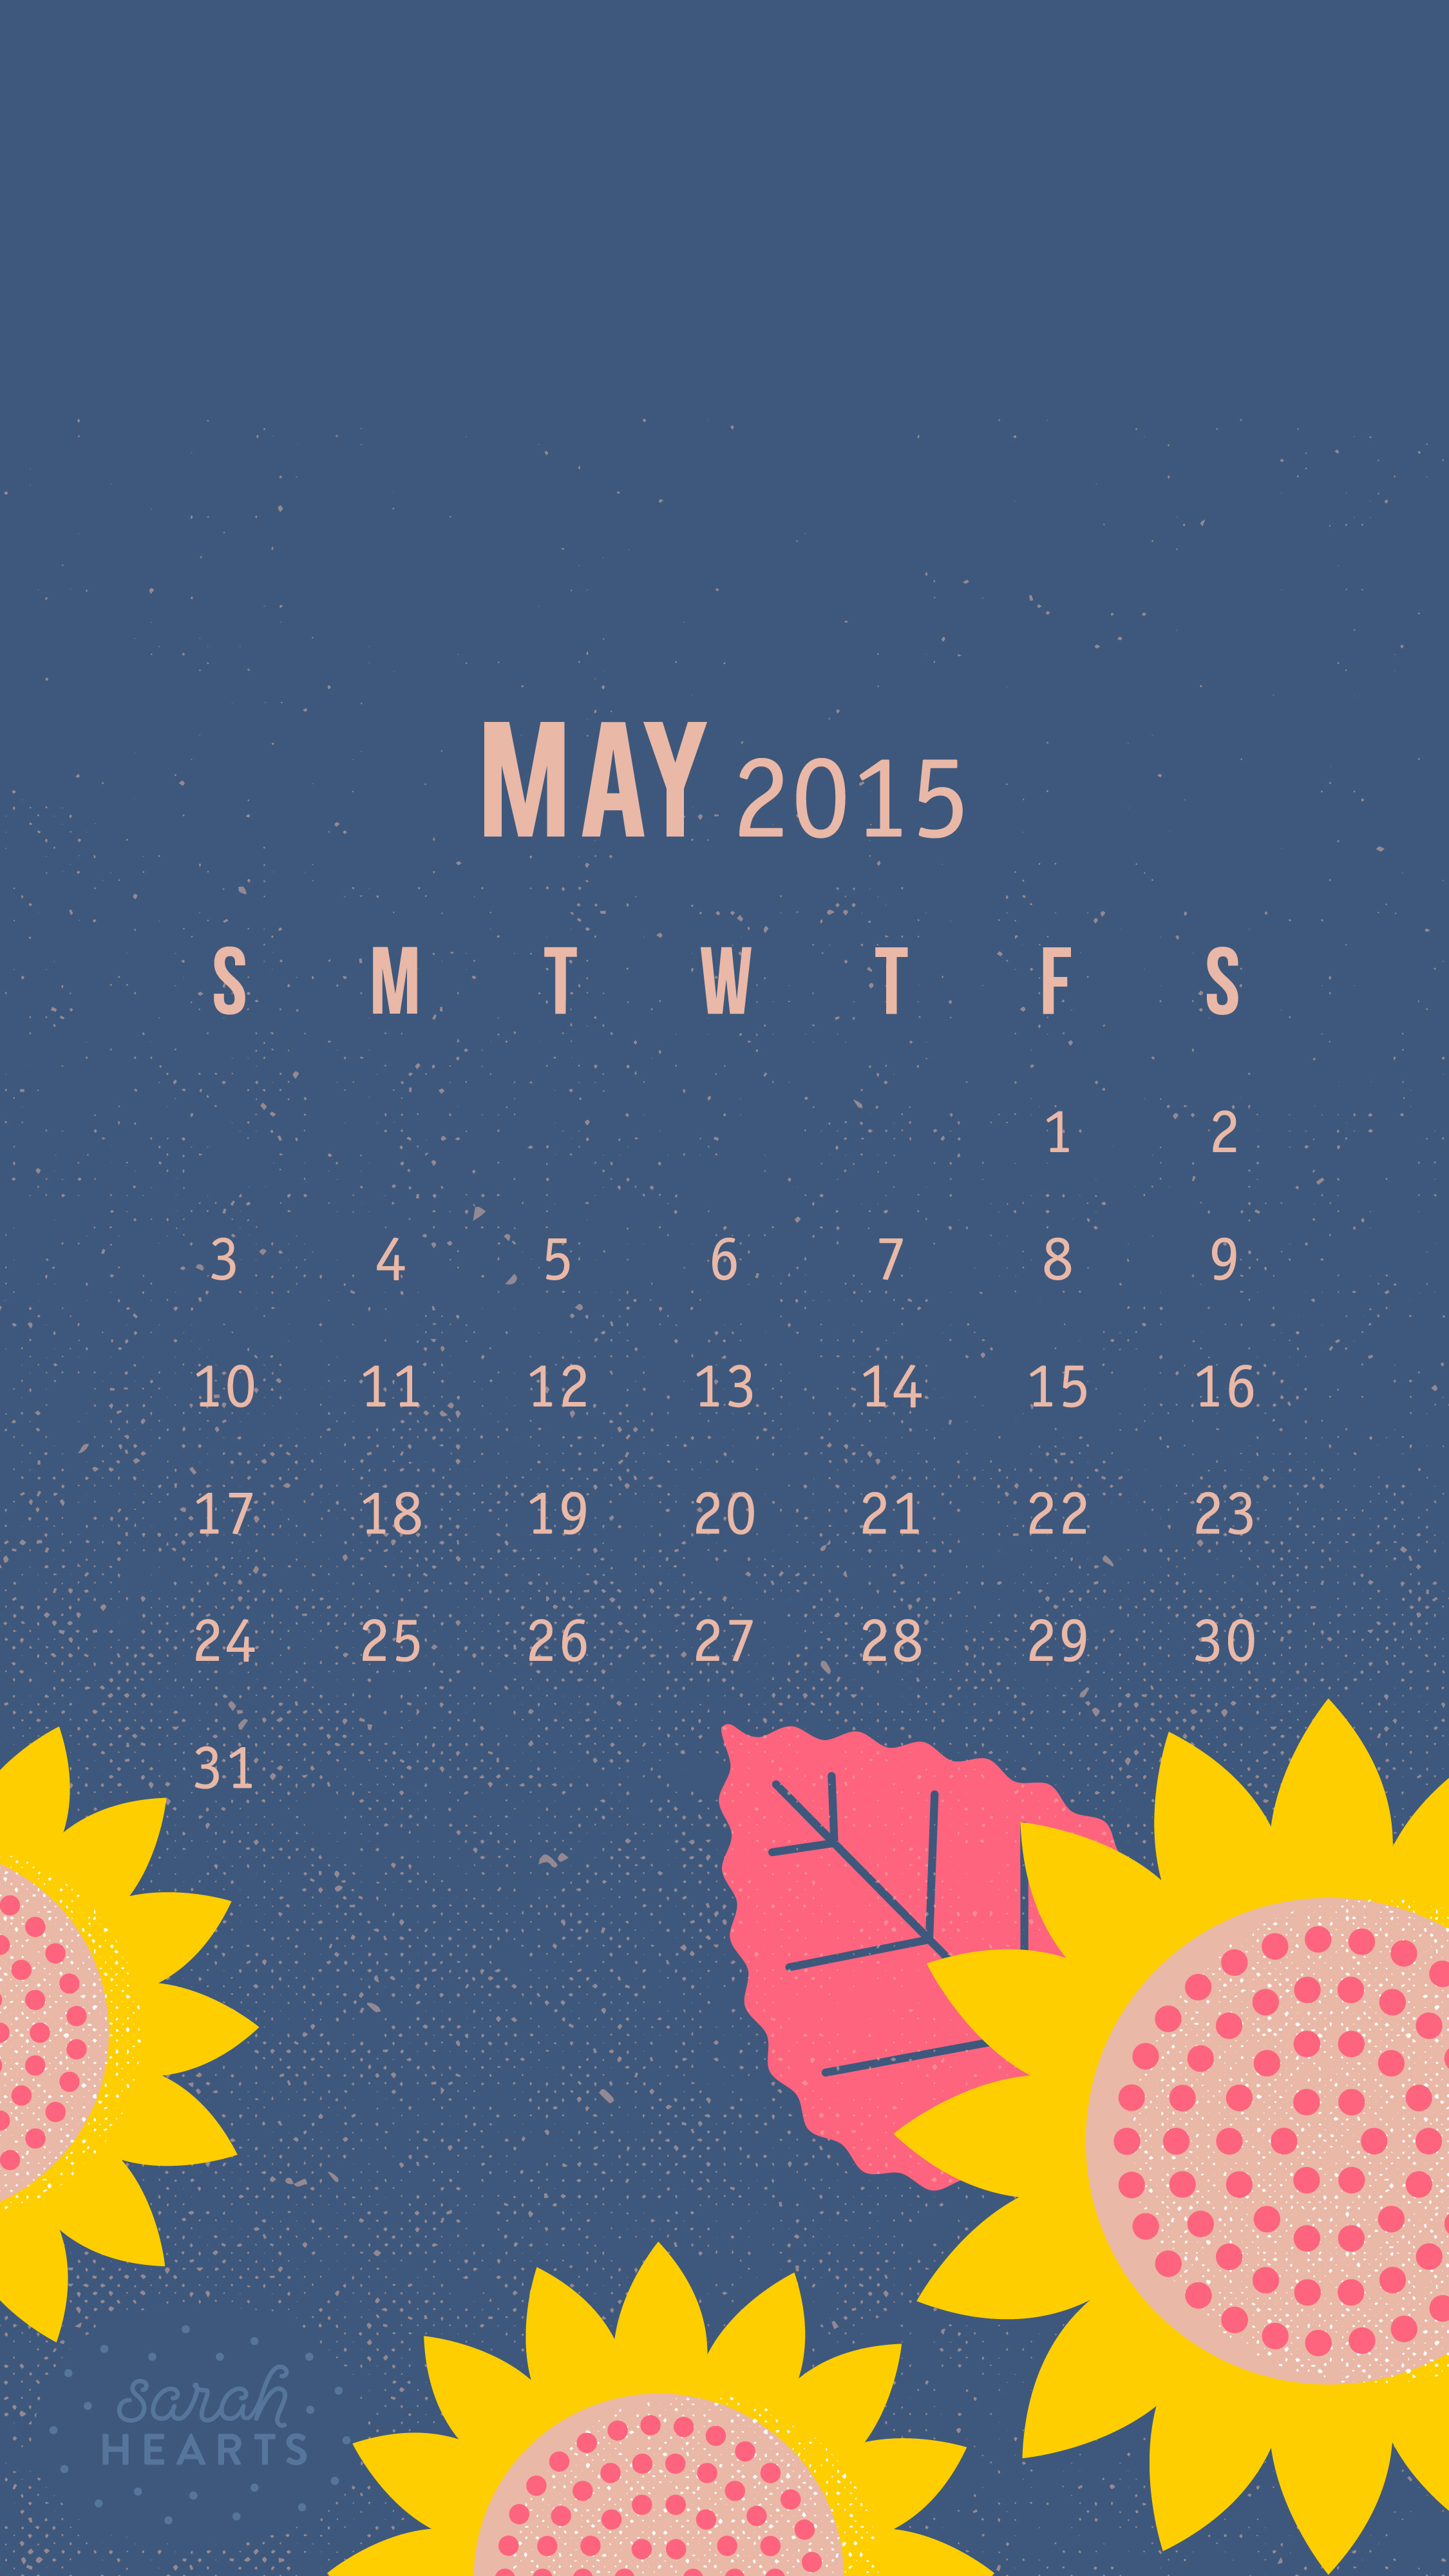 Cute Brand Wallpapers May 2015 Calendar Wallpaper Sarah Hearts